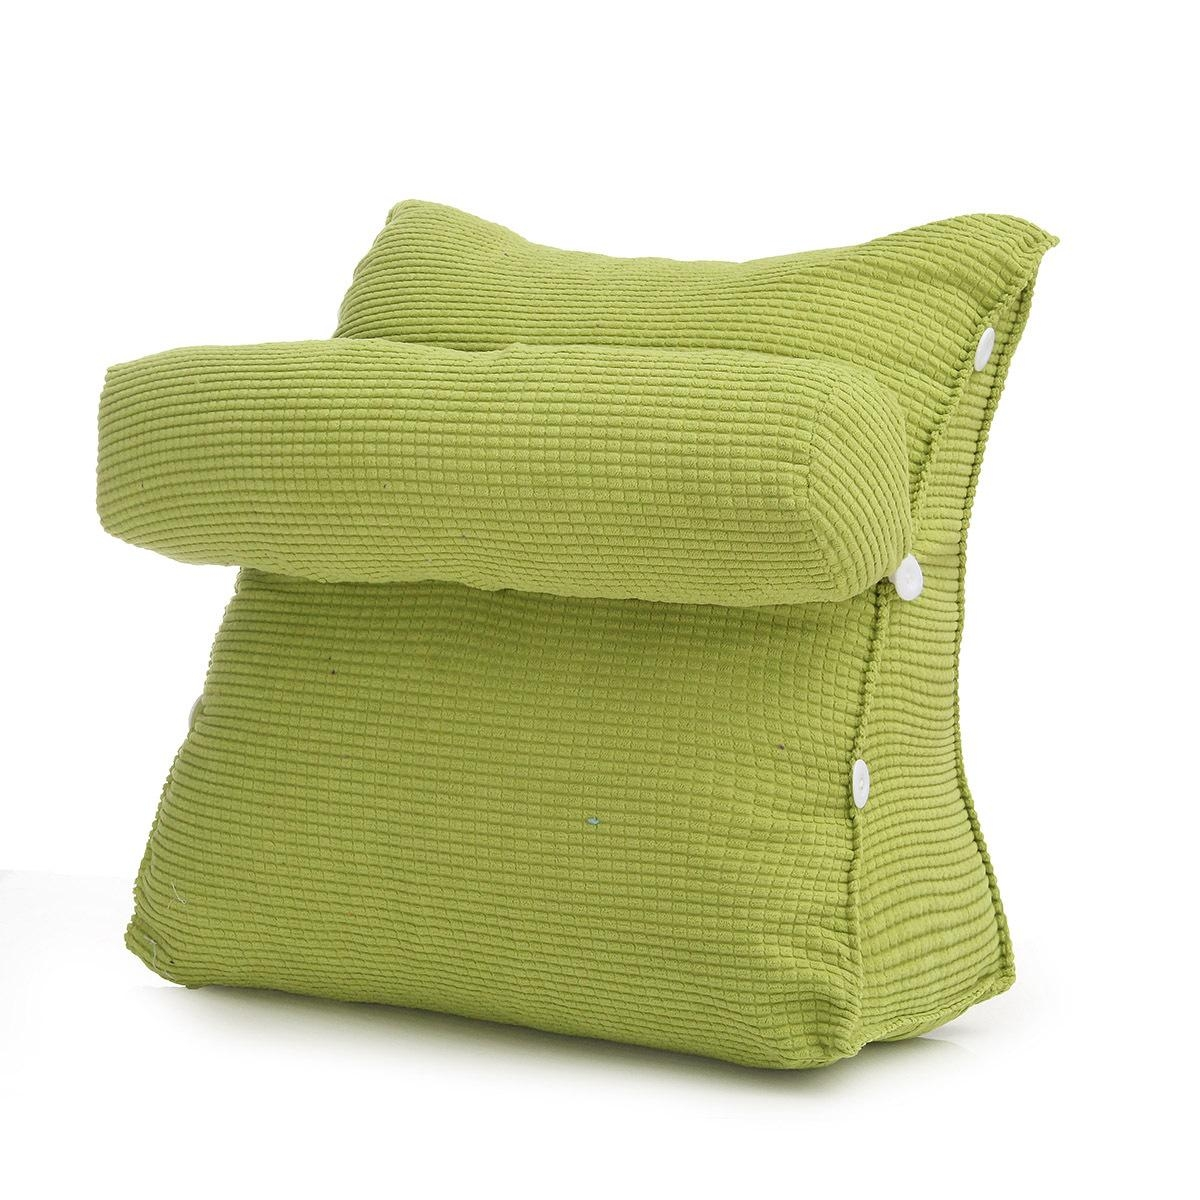 Sofa Bed Office Chair Cushion Adjustable Neck Support Back Wedge Inside Cushion Sofa Beds (Image 16 of 23)